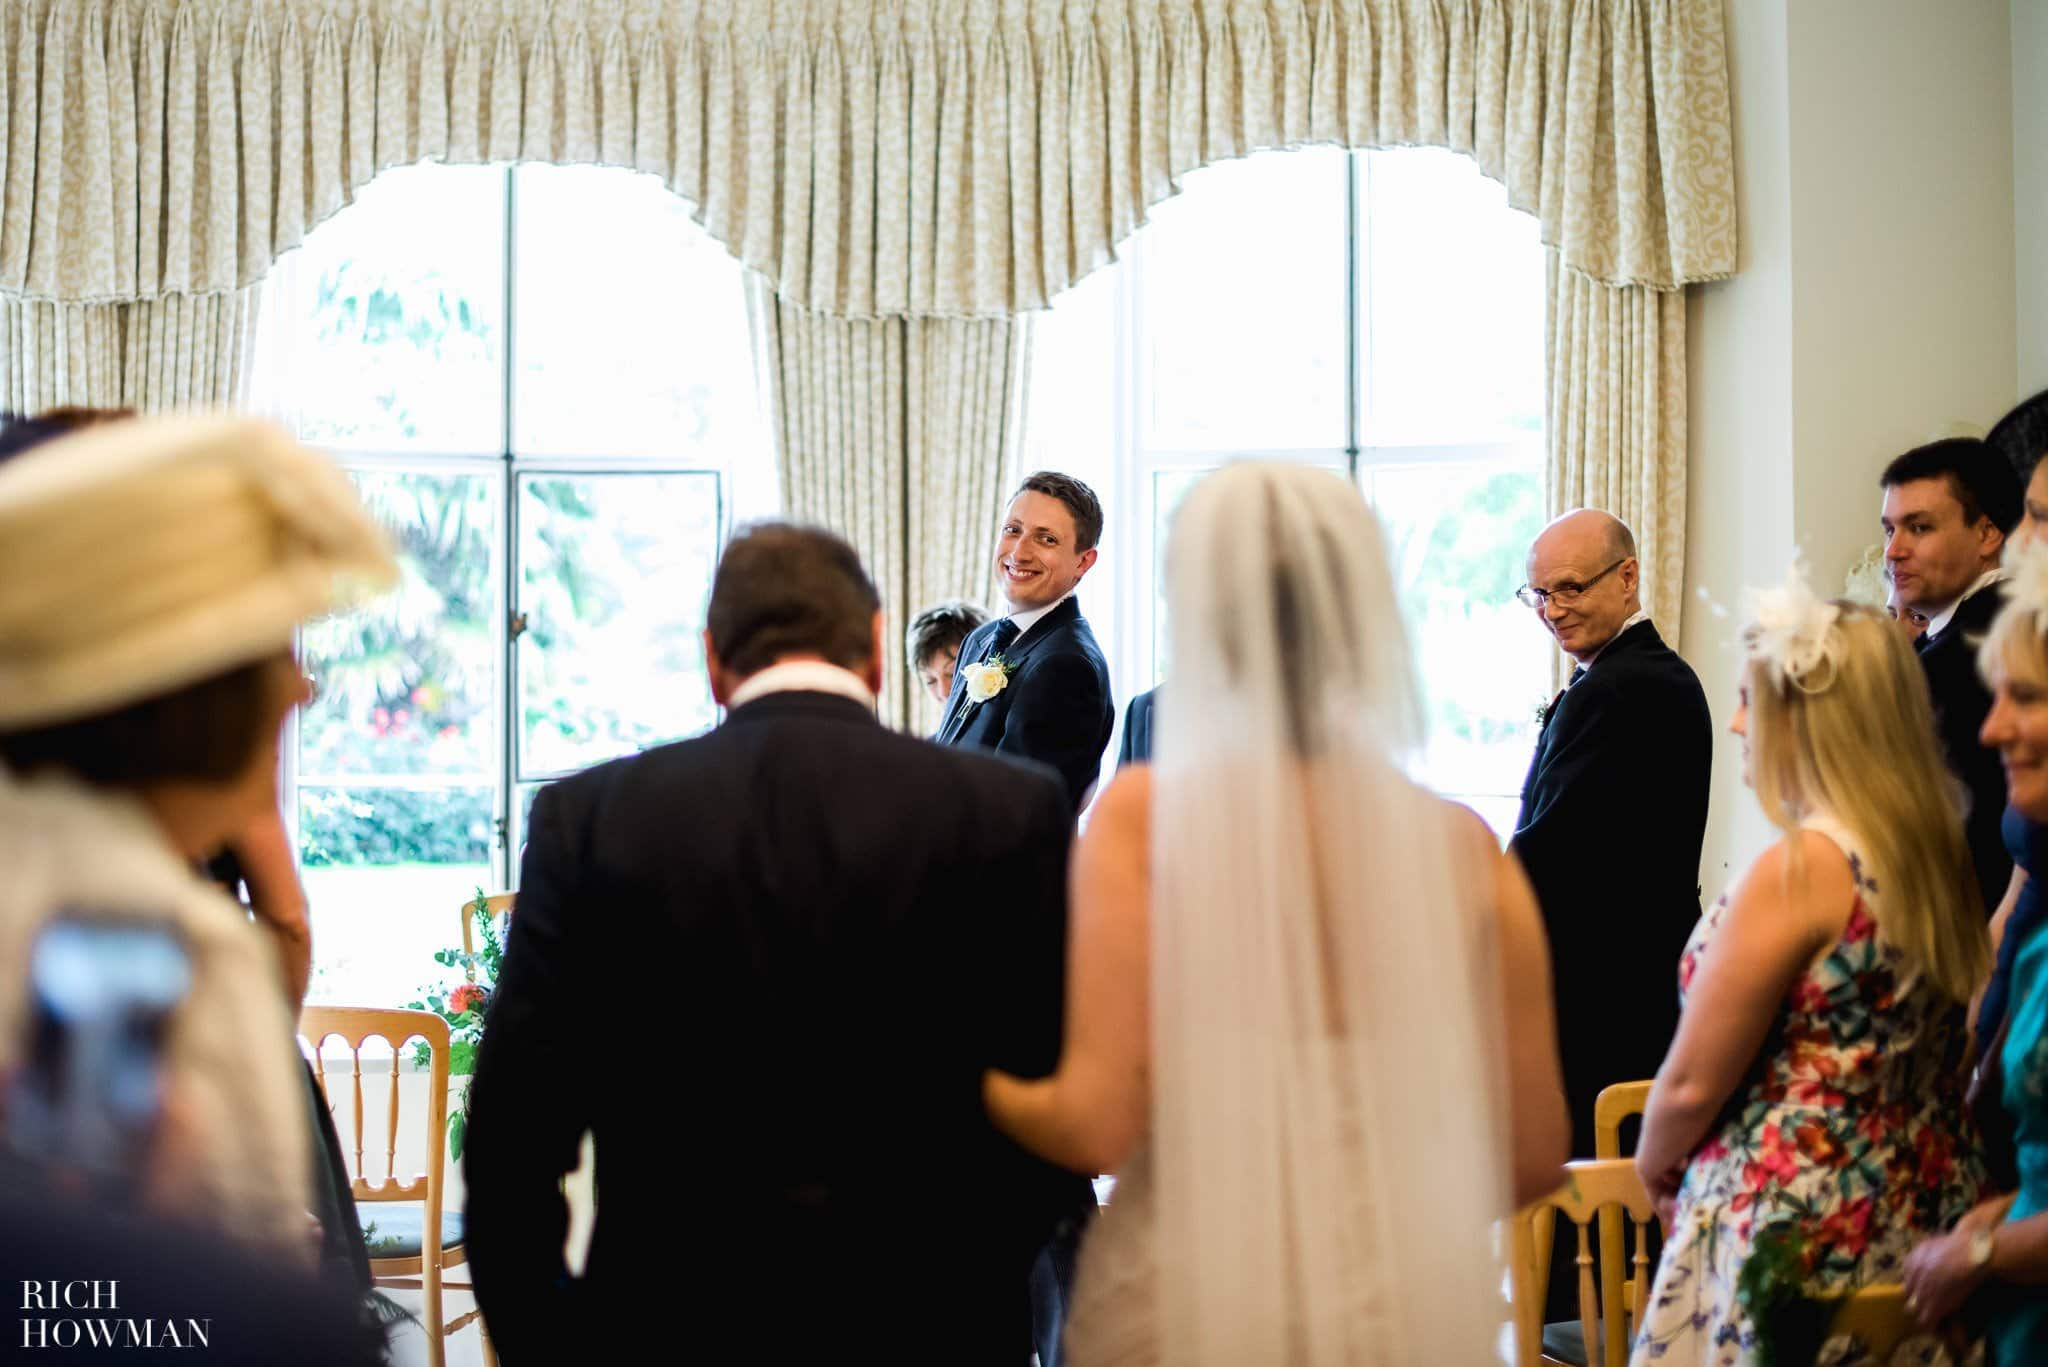 Groom glances over his shoulder at the bride as she walks down the aisle on her fathers arm